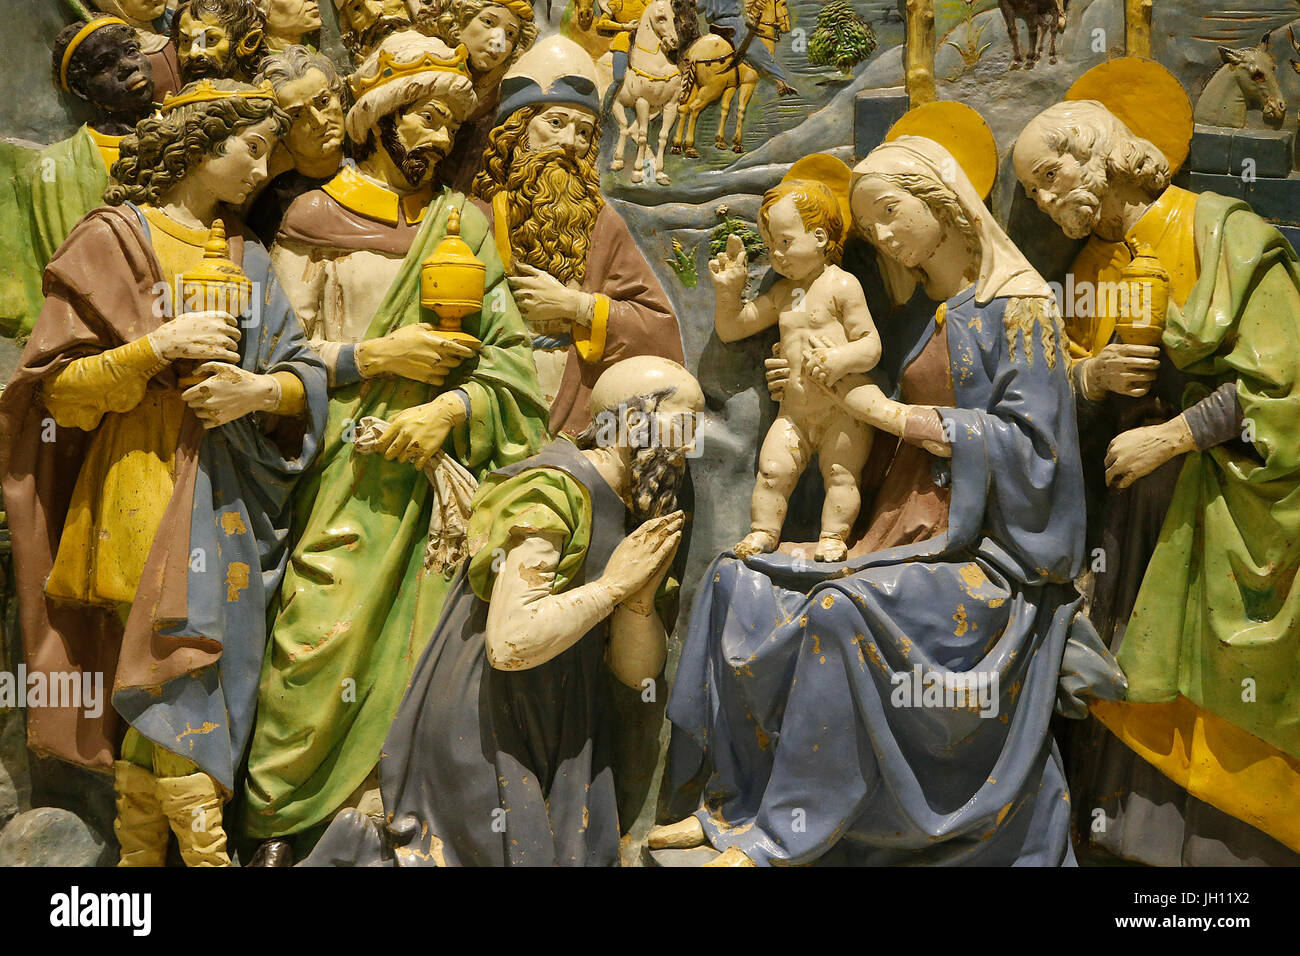 The Victoria and Albert Museum. The Adoration of the Kings. About 1500-10. Andrea della Robbia. Italy, Florence. - Stock Image